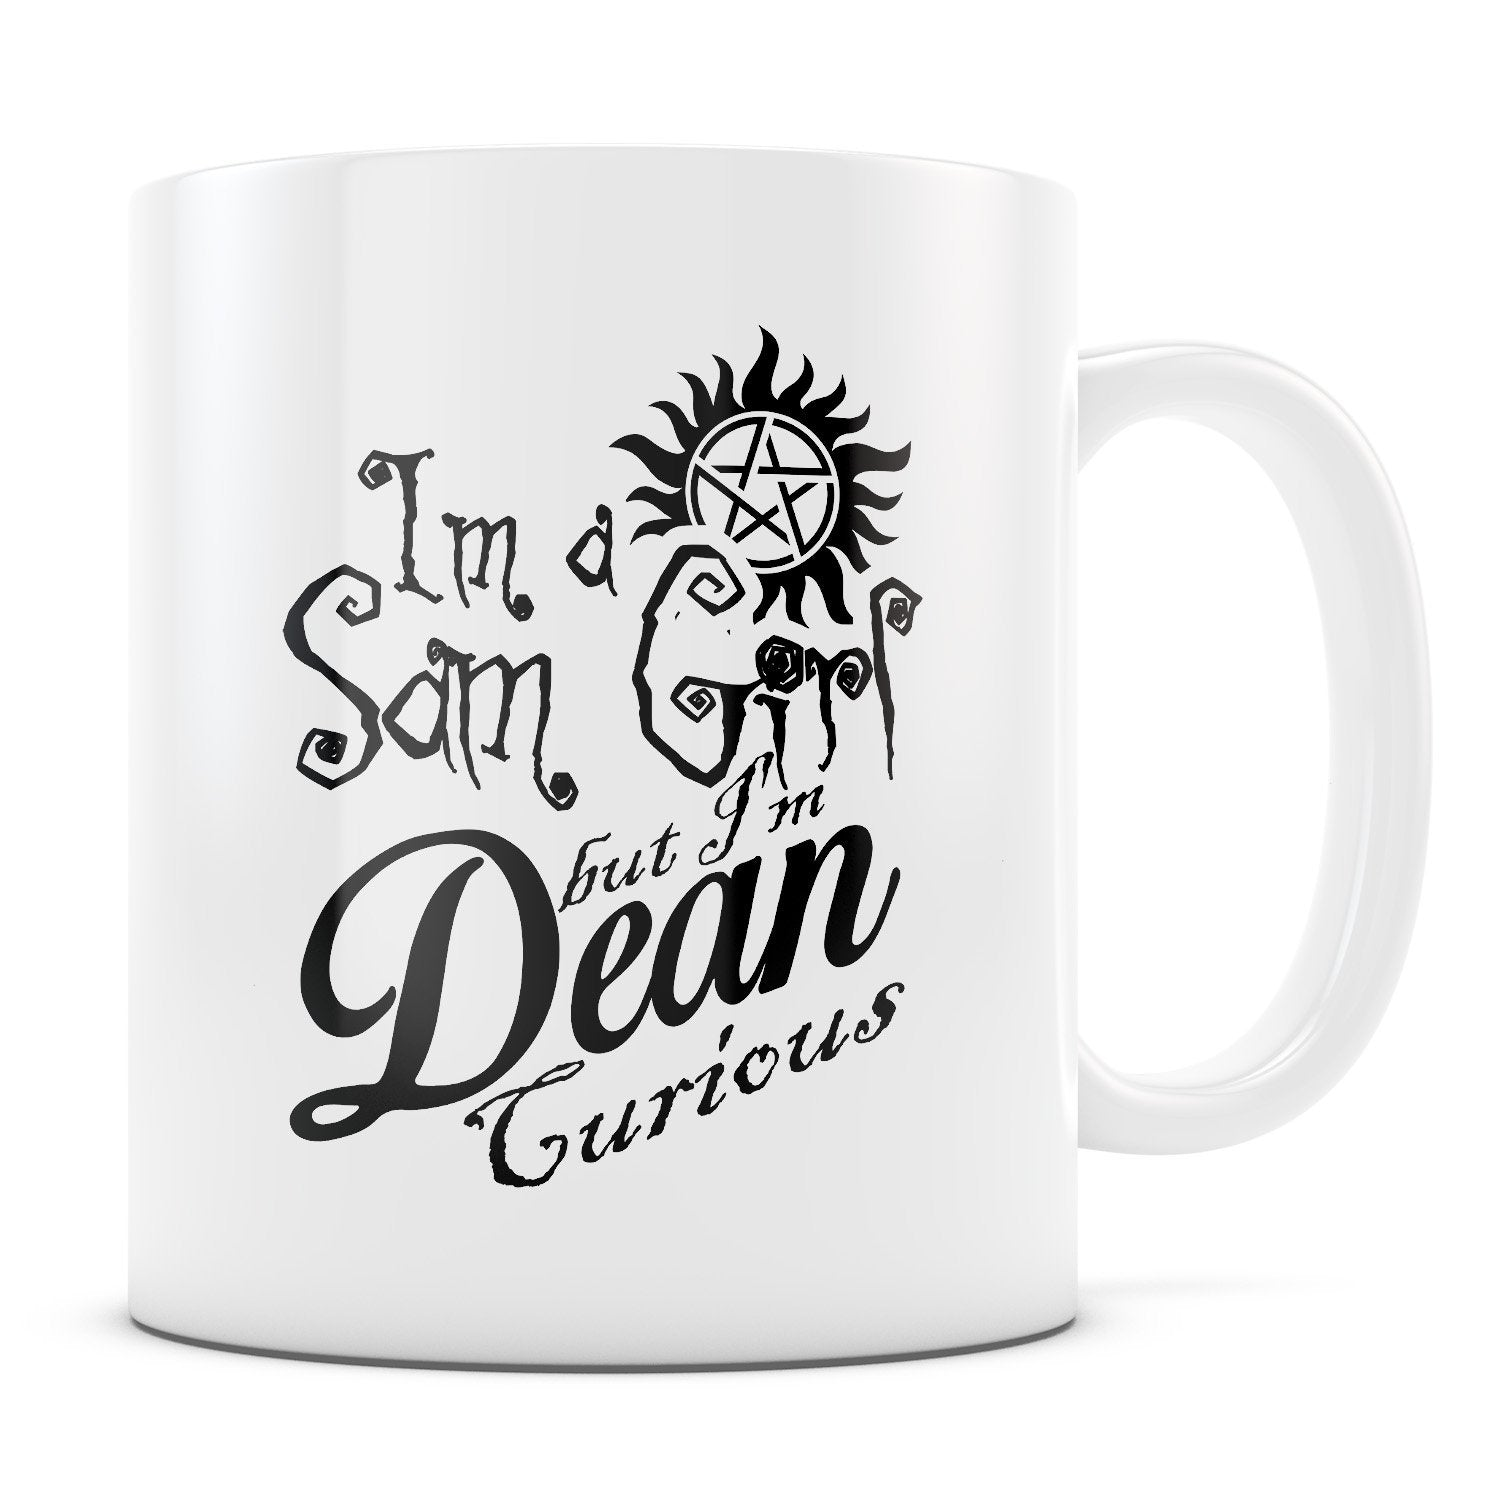 Sam Girl - 11oz/15oz White Mug-Coffee Mug-CustomCat-11oz Mug-White-